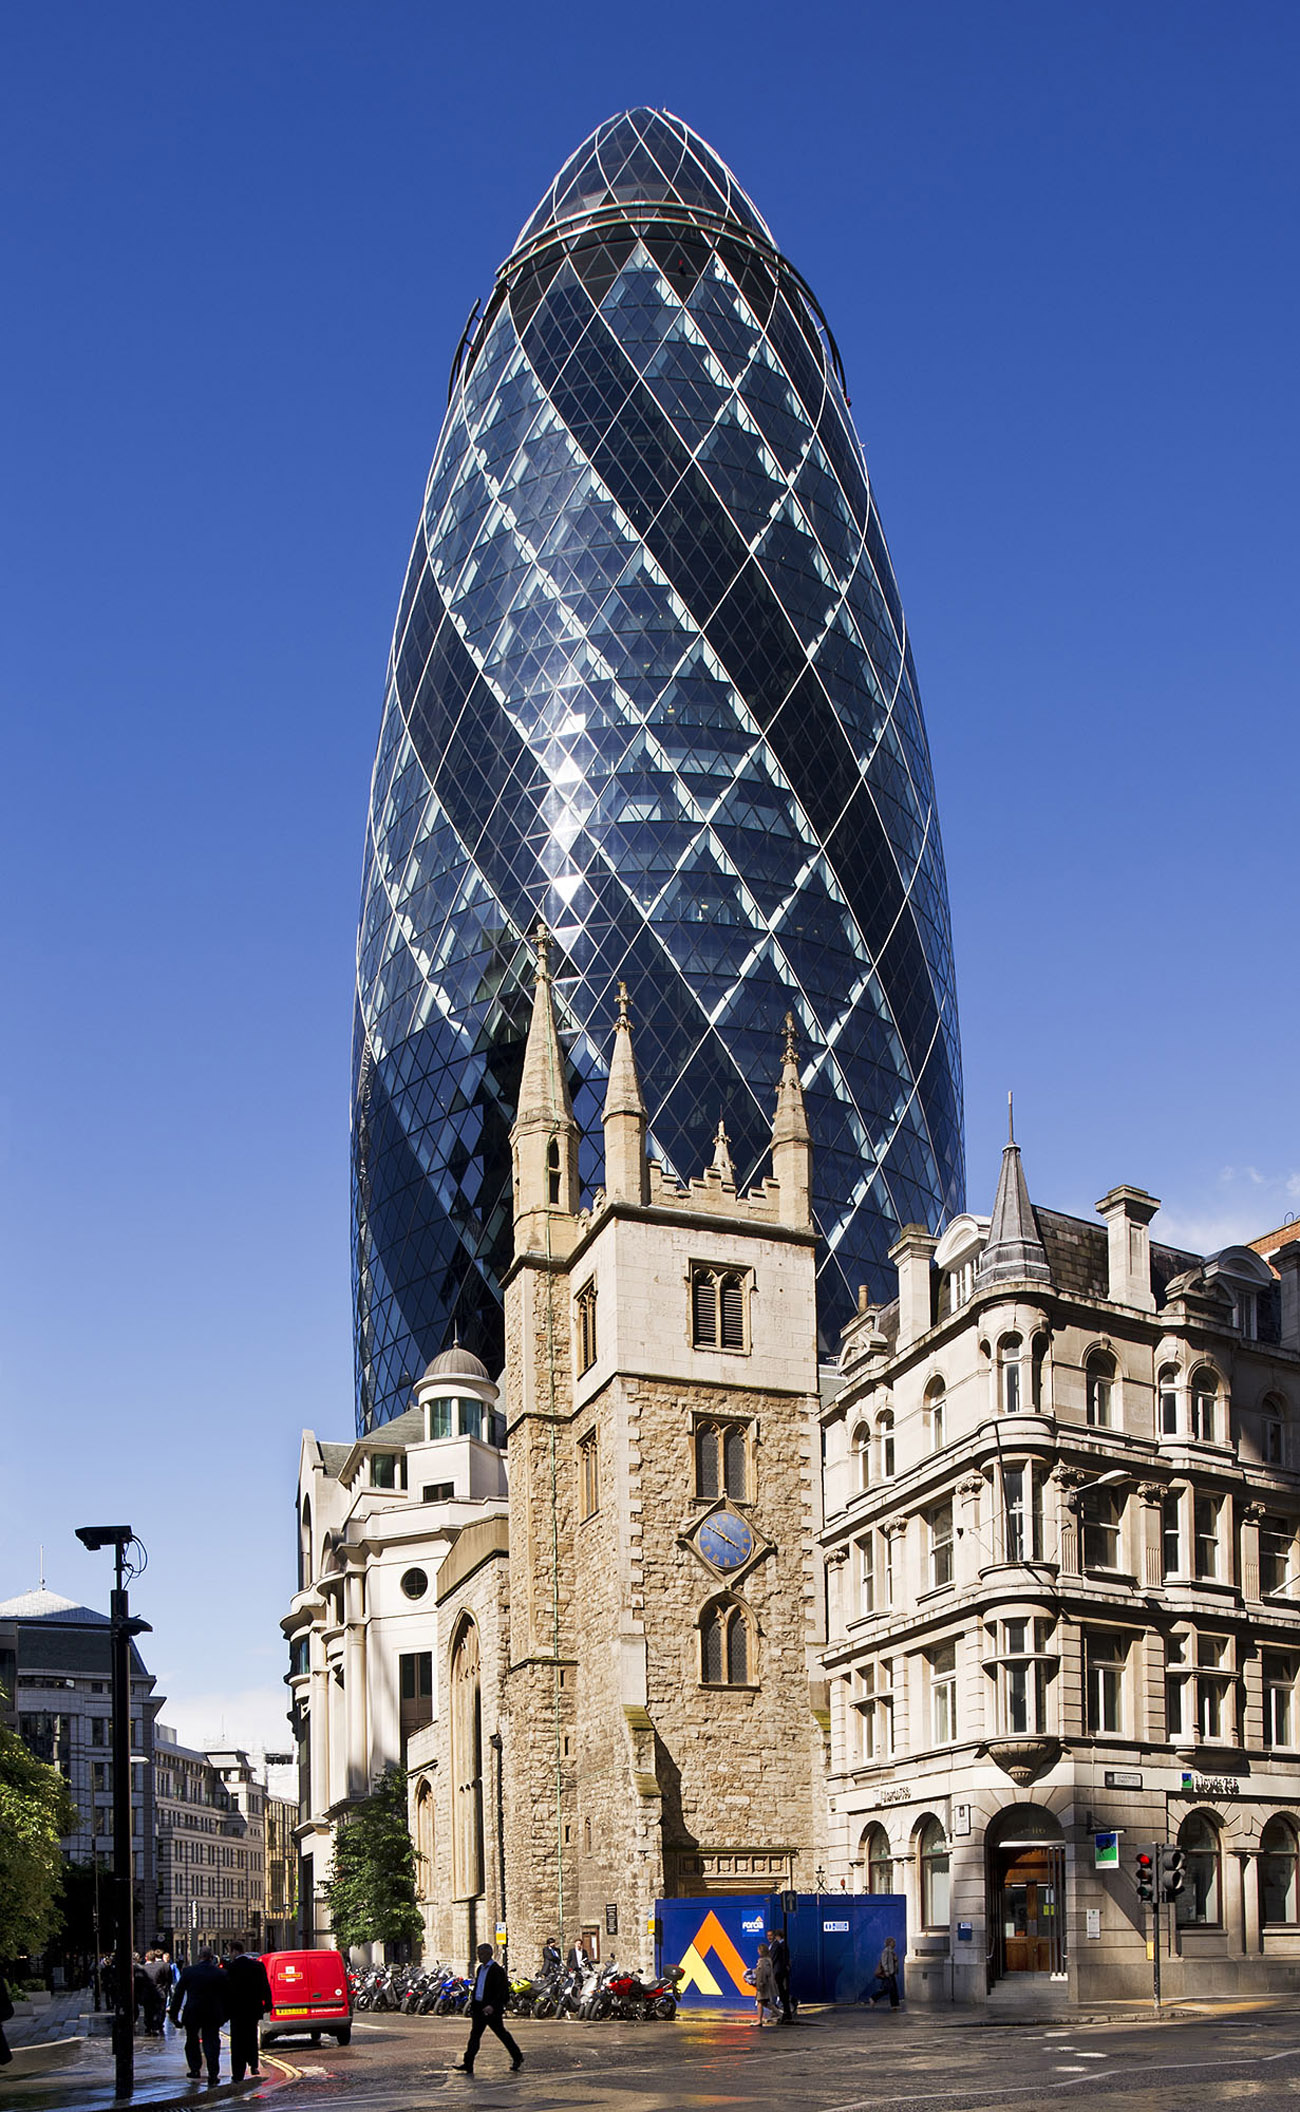 Church of St Andrew Undershaft, St. Mary Axe, City of London, July 11, 2012. Photo © Historic England